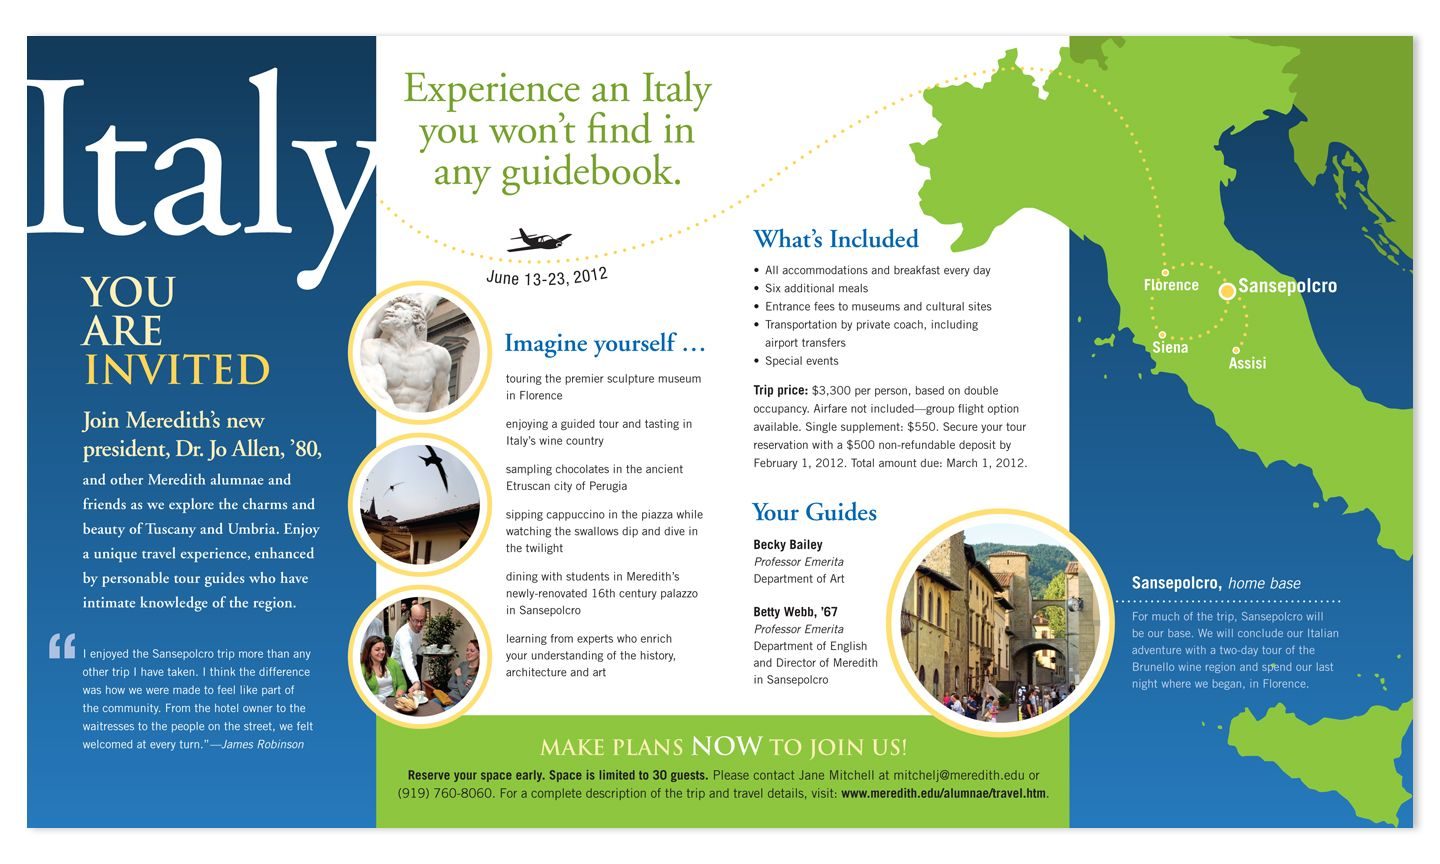 travel brochure project example Onwe.bioinnovate.co